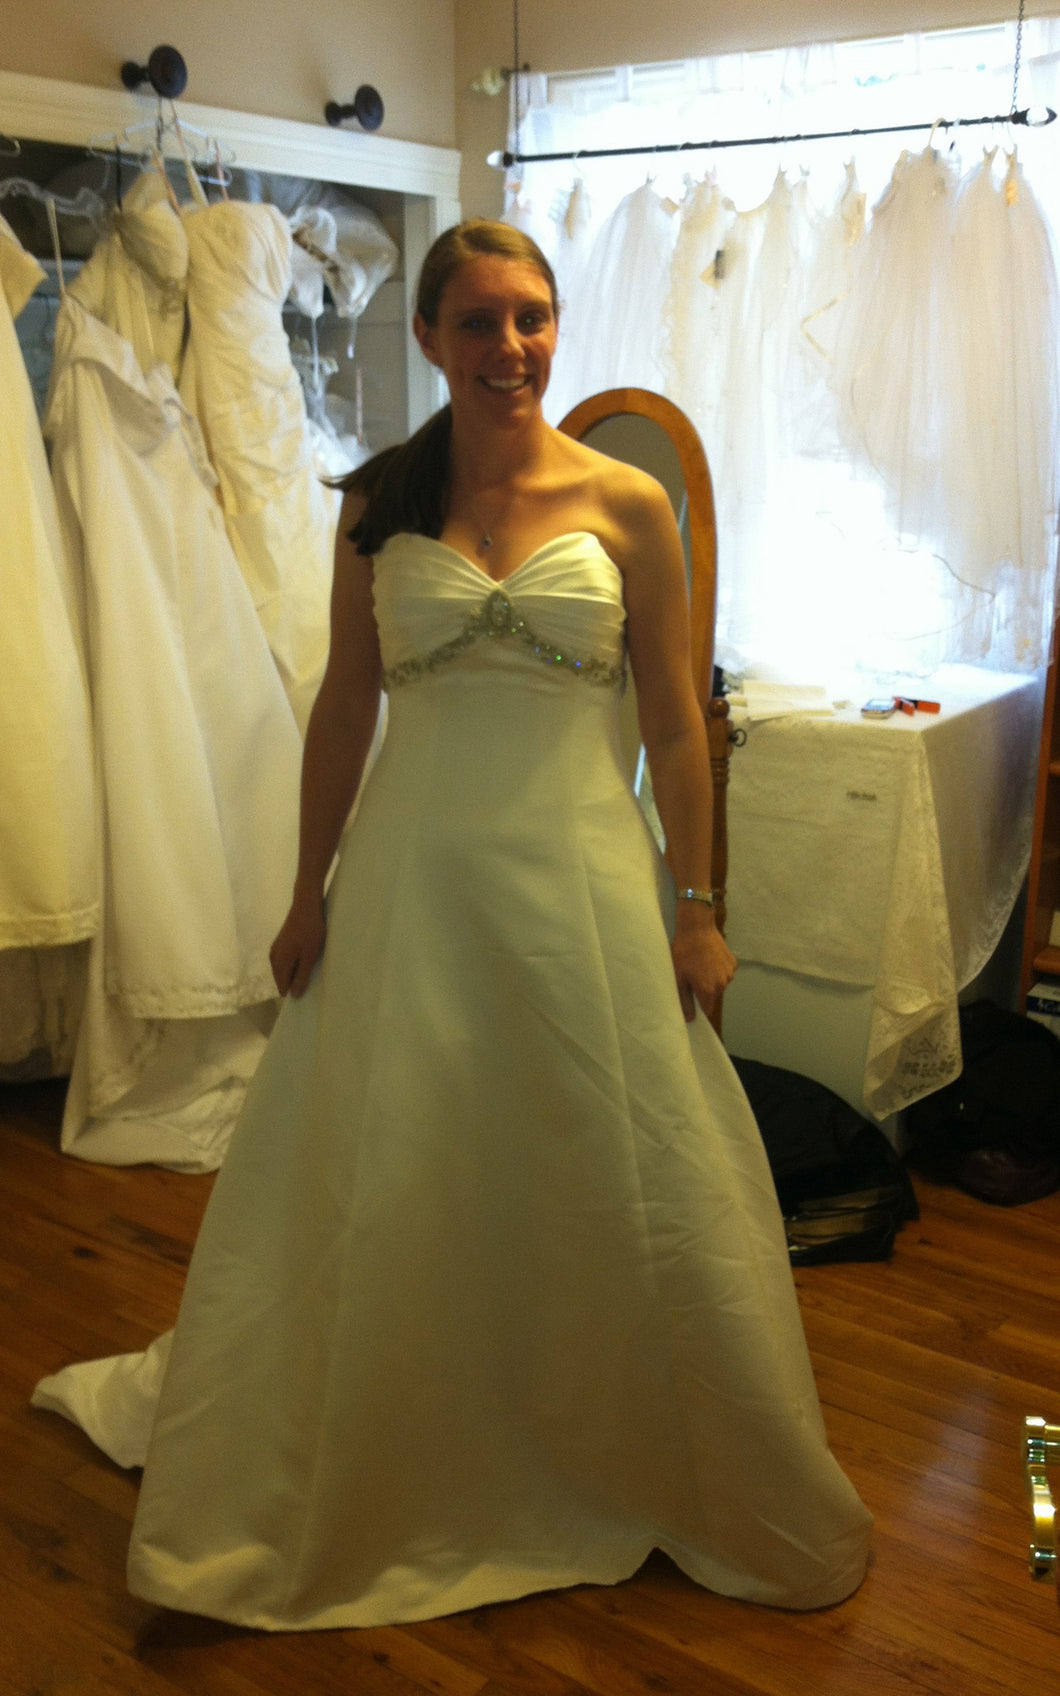 Impression Bridal  'The Couture Collection' - Impression Bridal - Nearly Newlywed Bridal Boutique - 1